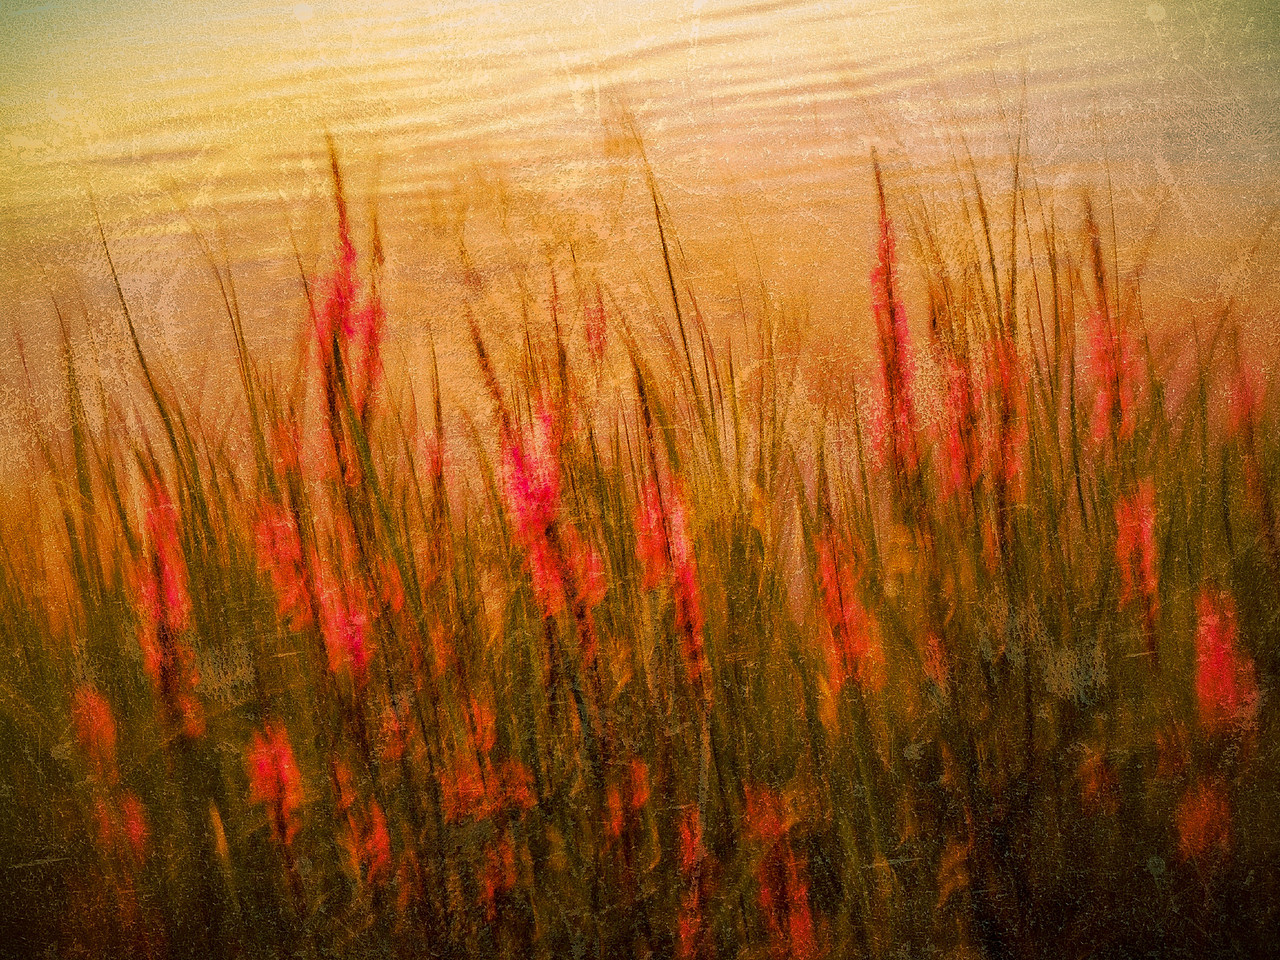 This was taken on the shore of Pocksha Pond at sunset. The very last rays of light and these weeds were illuminated so nicely. I took a few purposely blurred ones so I could try working this effect with it.